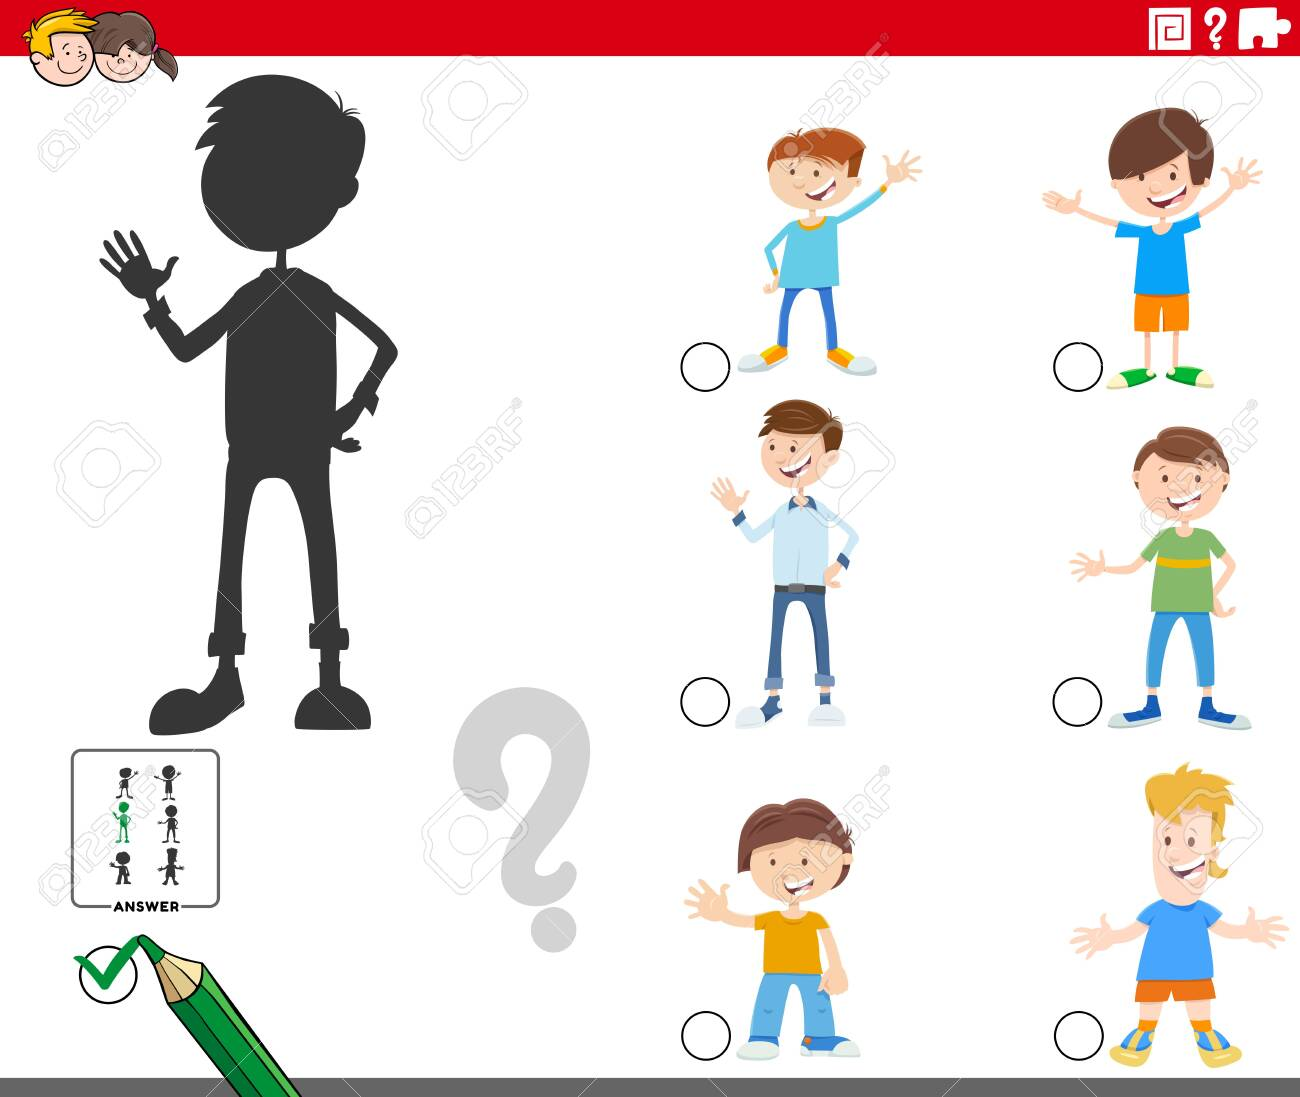 Cartoon Illustration of Finding the Right Shadow Educational Game for Children with Kid Boys Characters - 143735974